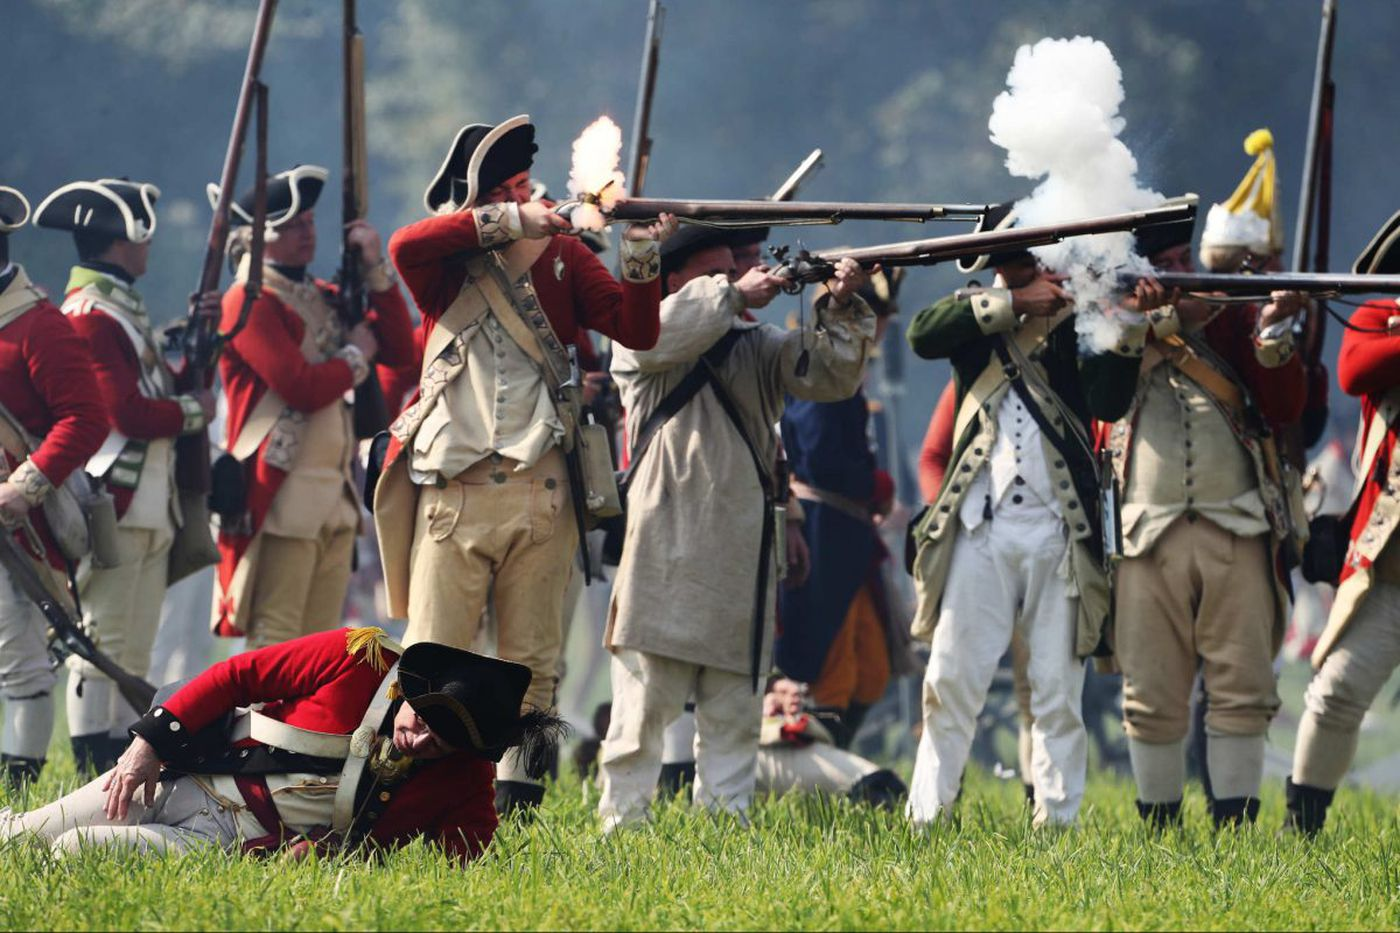 A Revolutionary battlefield is saved in Chester County